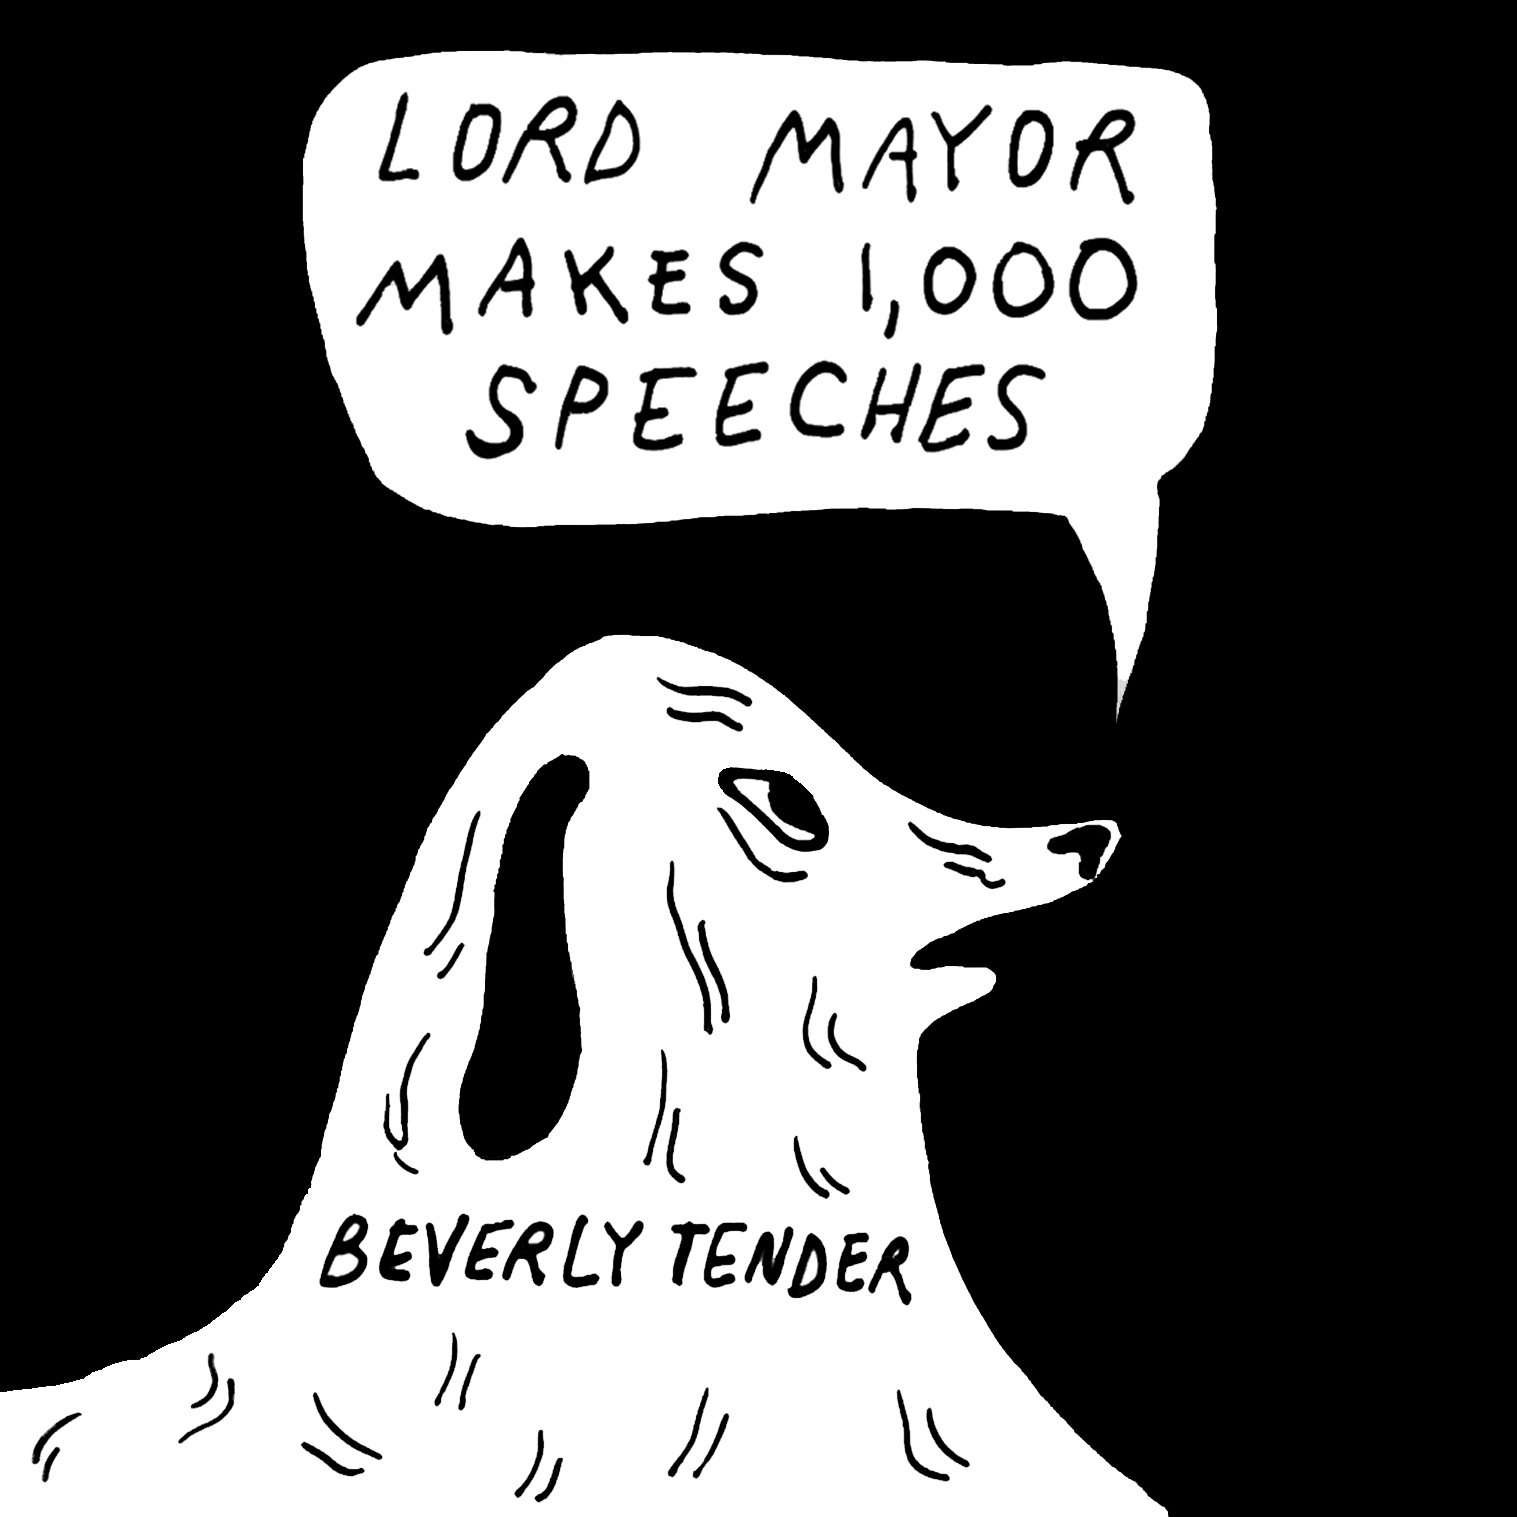 Beverly Tender   Lord Mayor Makes 1,000 Speeches